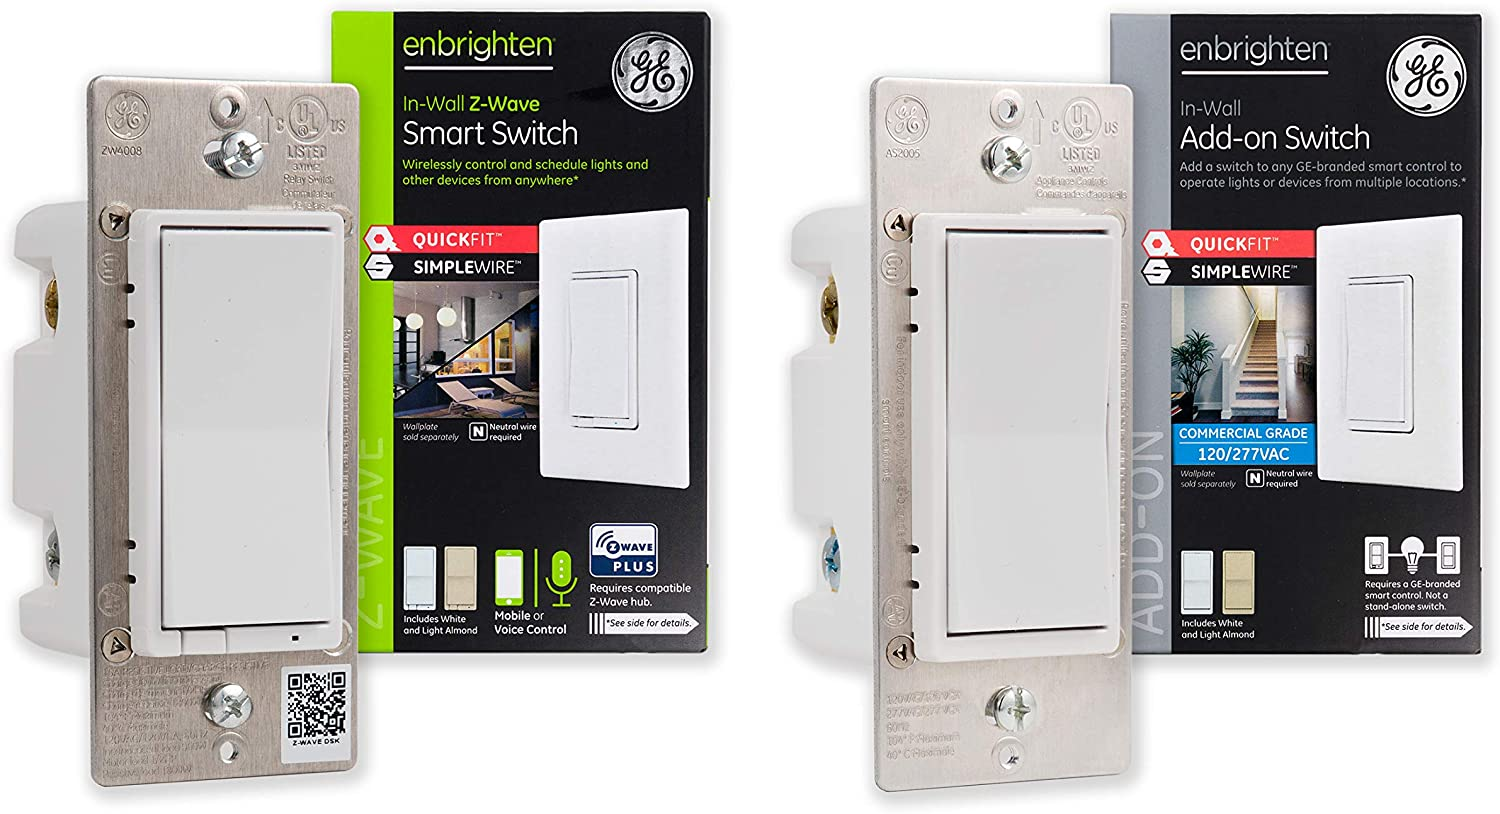 GE Enbrighten Z-Wave Plus Smart Light Switch Kit with QuickFit and SimpleWire, 3-Way Ready, Works with Alexa, Google Assistant, ZWave Hub Required, 1 Switch + 1 Add-On, White & Light Almond, 47863